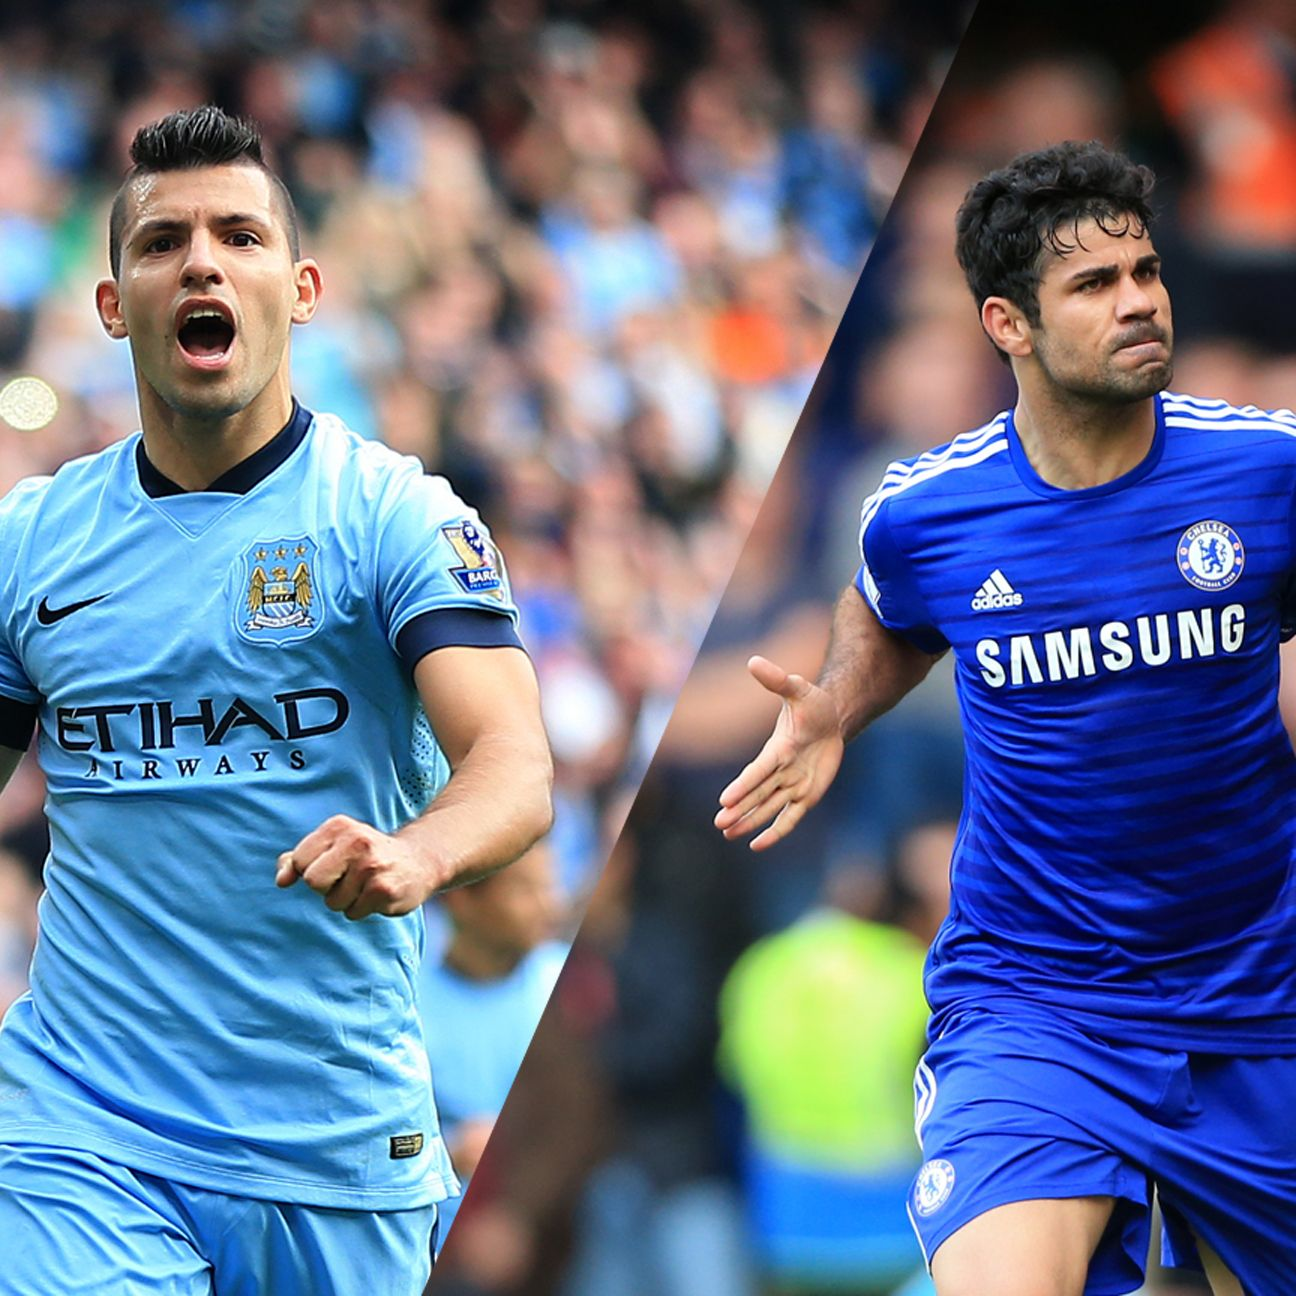 Manchester City's Sergio Aguero (14 goals) and Chelsea's Diego Costa (17 goals) are the top two scorers in the Prem.